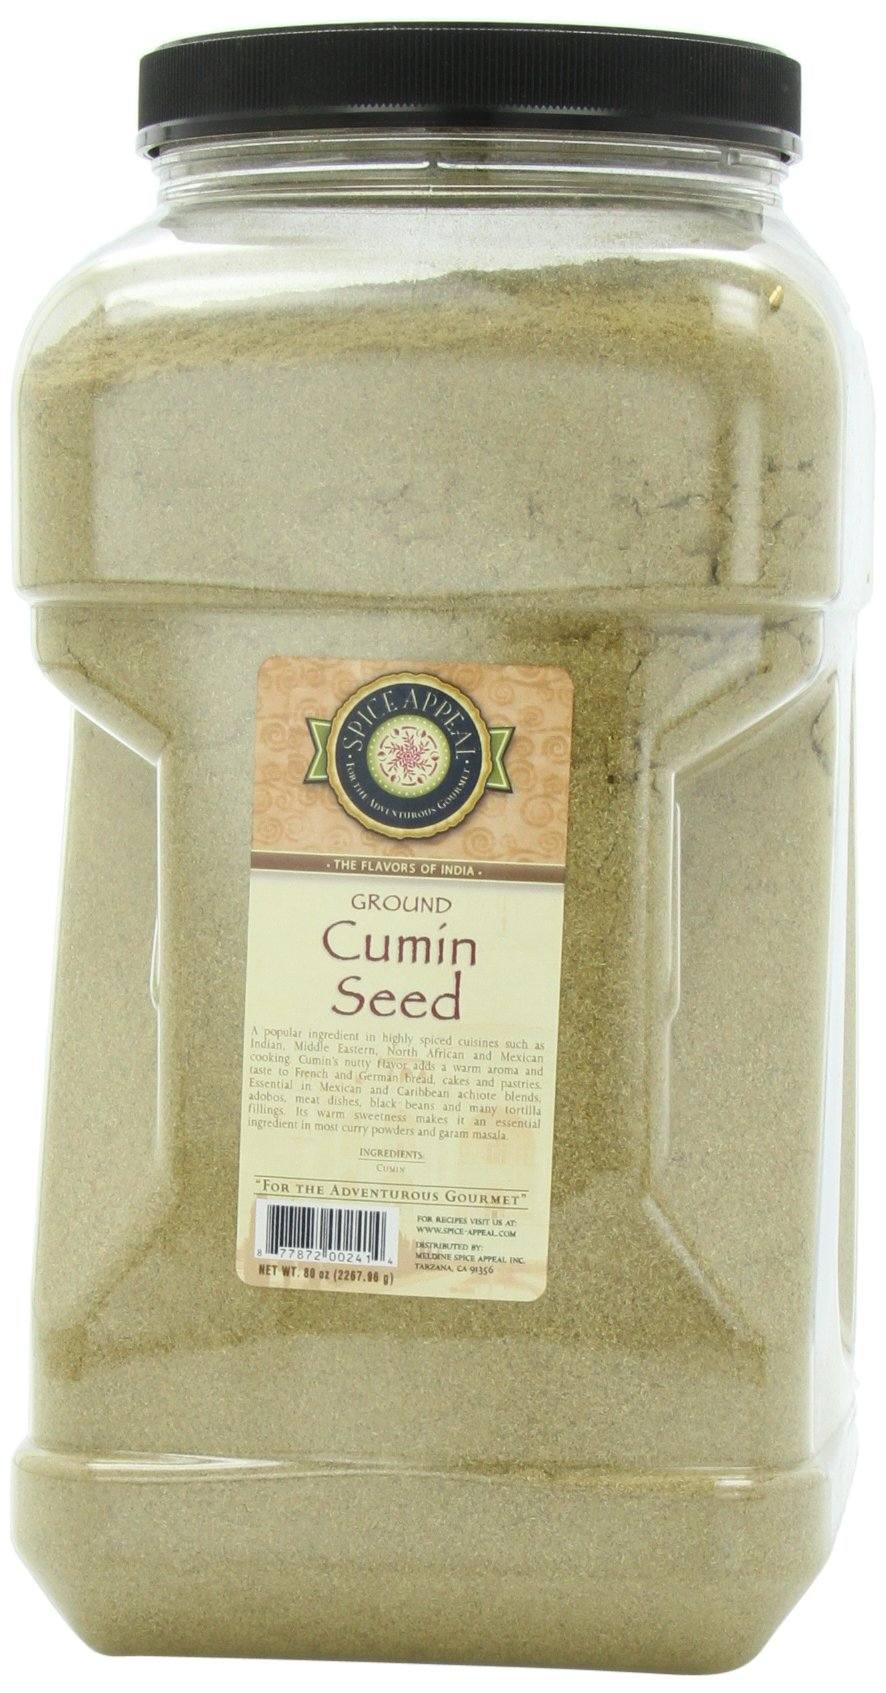 Spice Appeal Cumin Seed Ground, 5 lbs